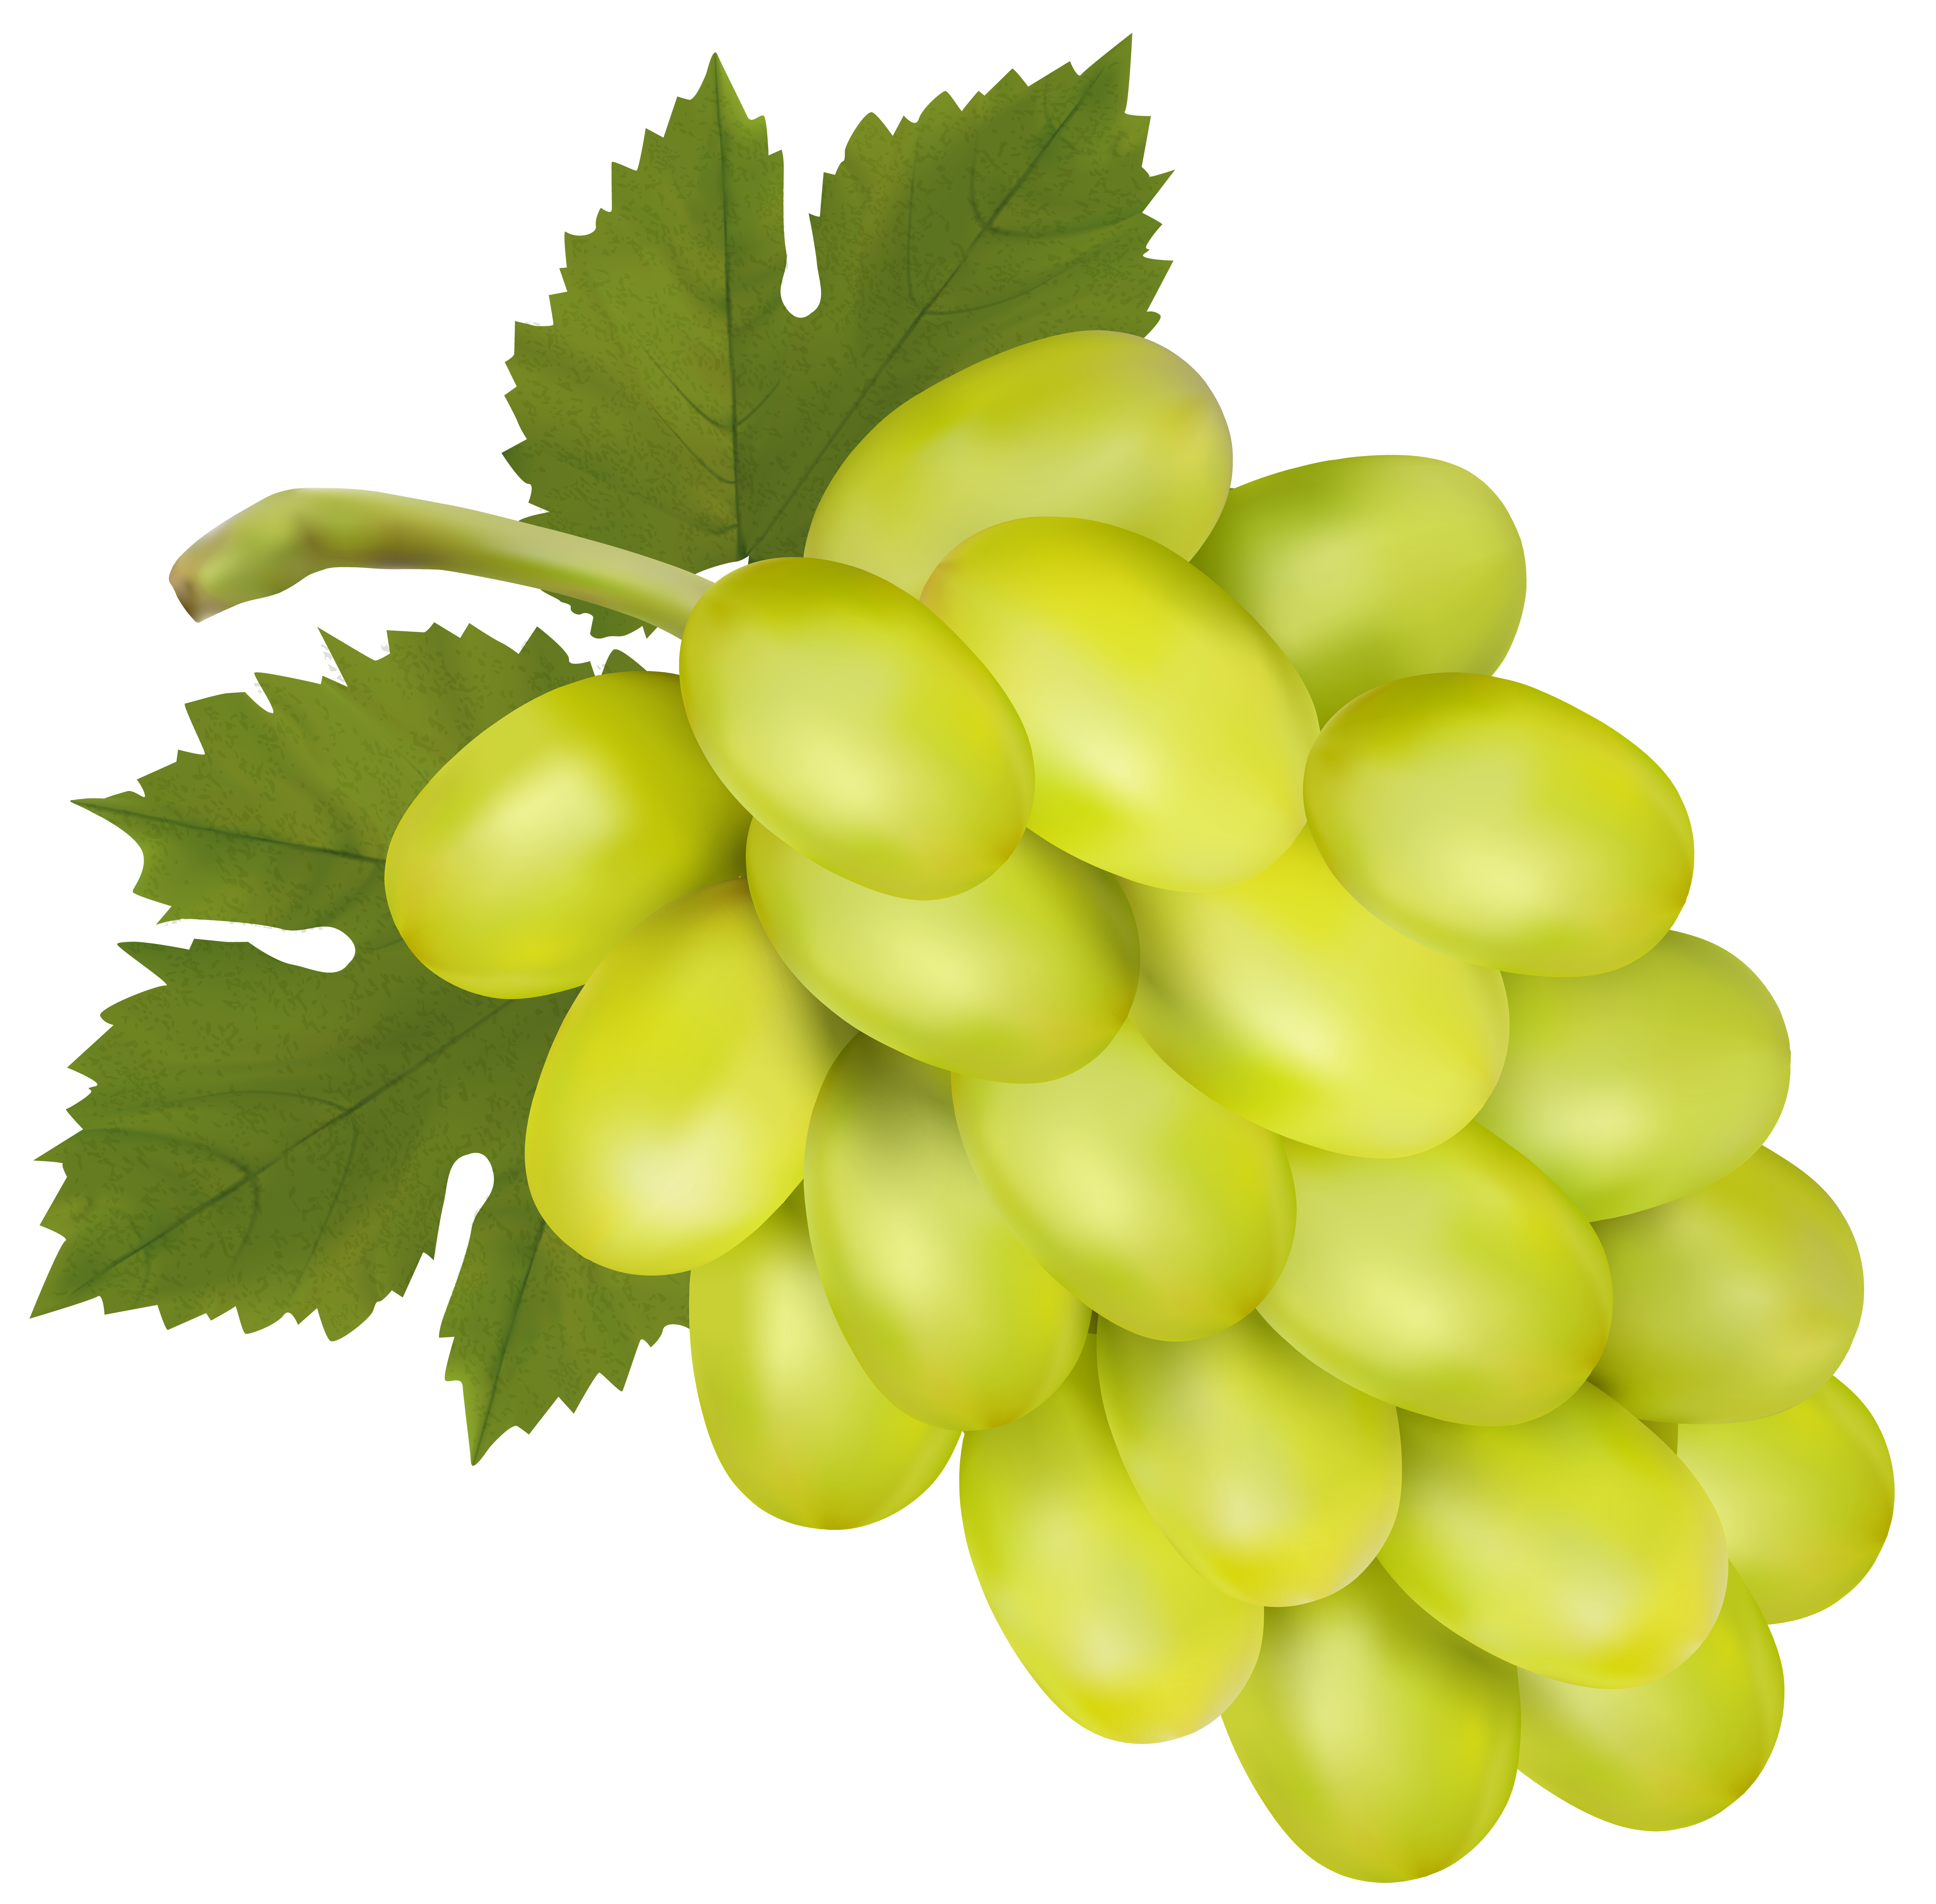 Grapes clipart yellow. White grape png clip